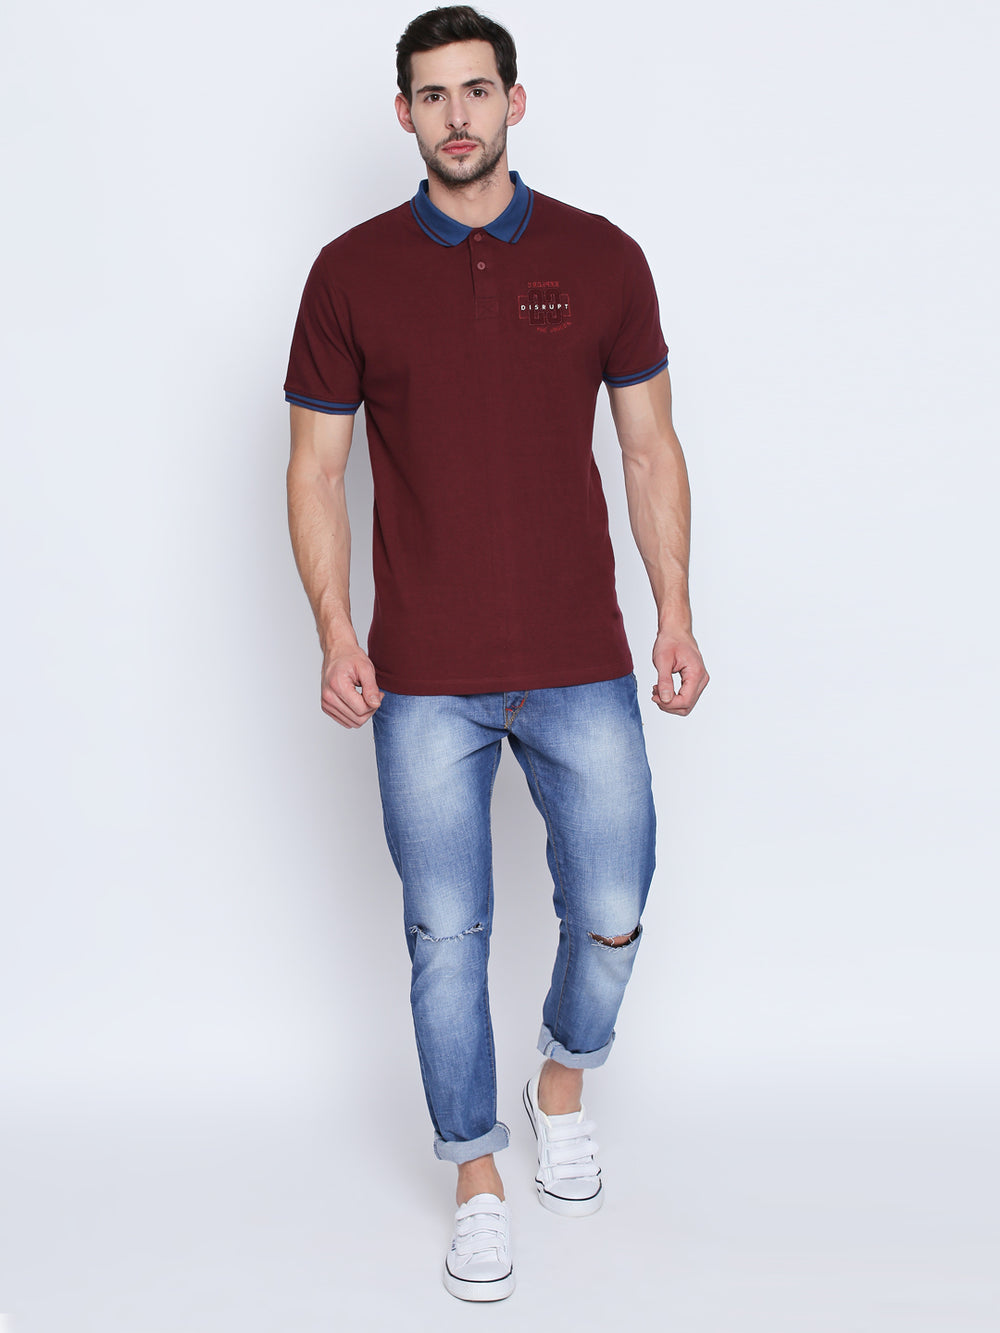 Disrupt WineEmbroidered Cotton Half Sleeve Polo T-Shirt For Men's